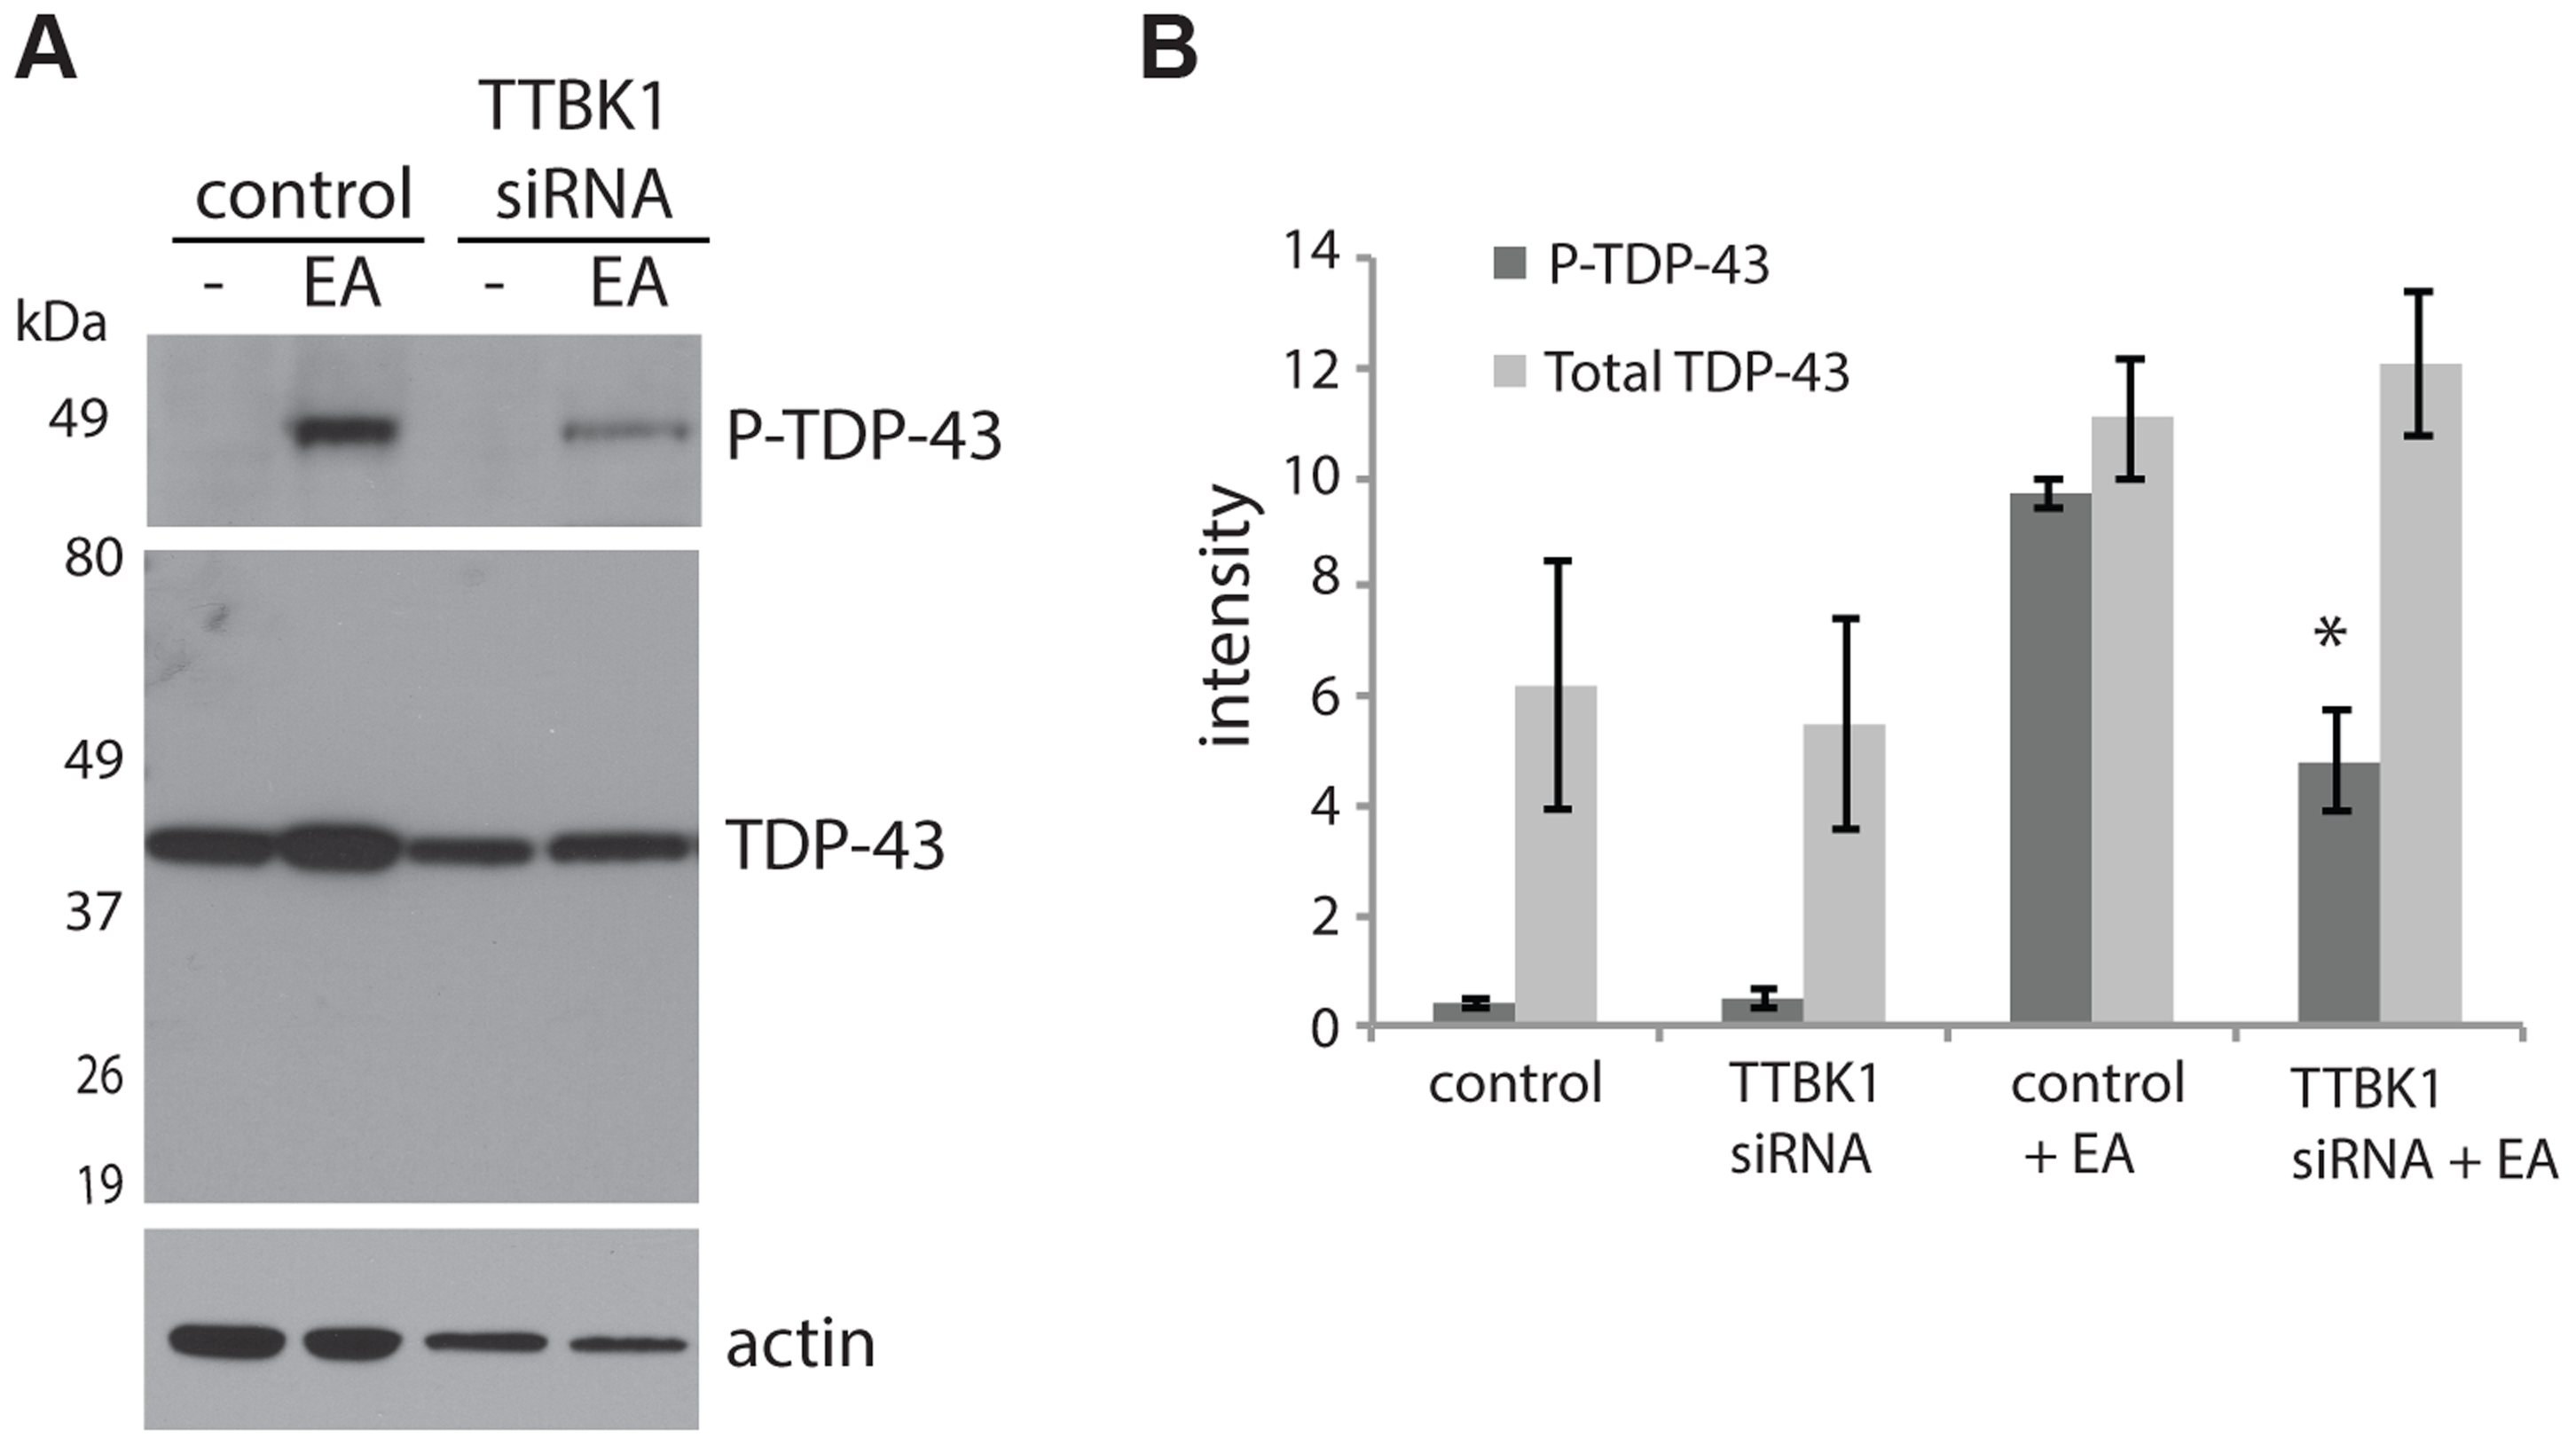 Reduced TTBK1 protects against TDP-43 phosphorylation.